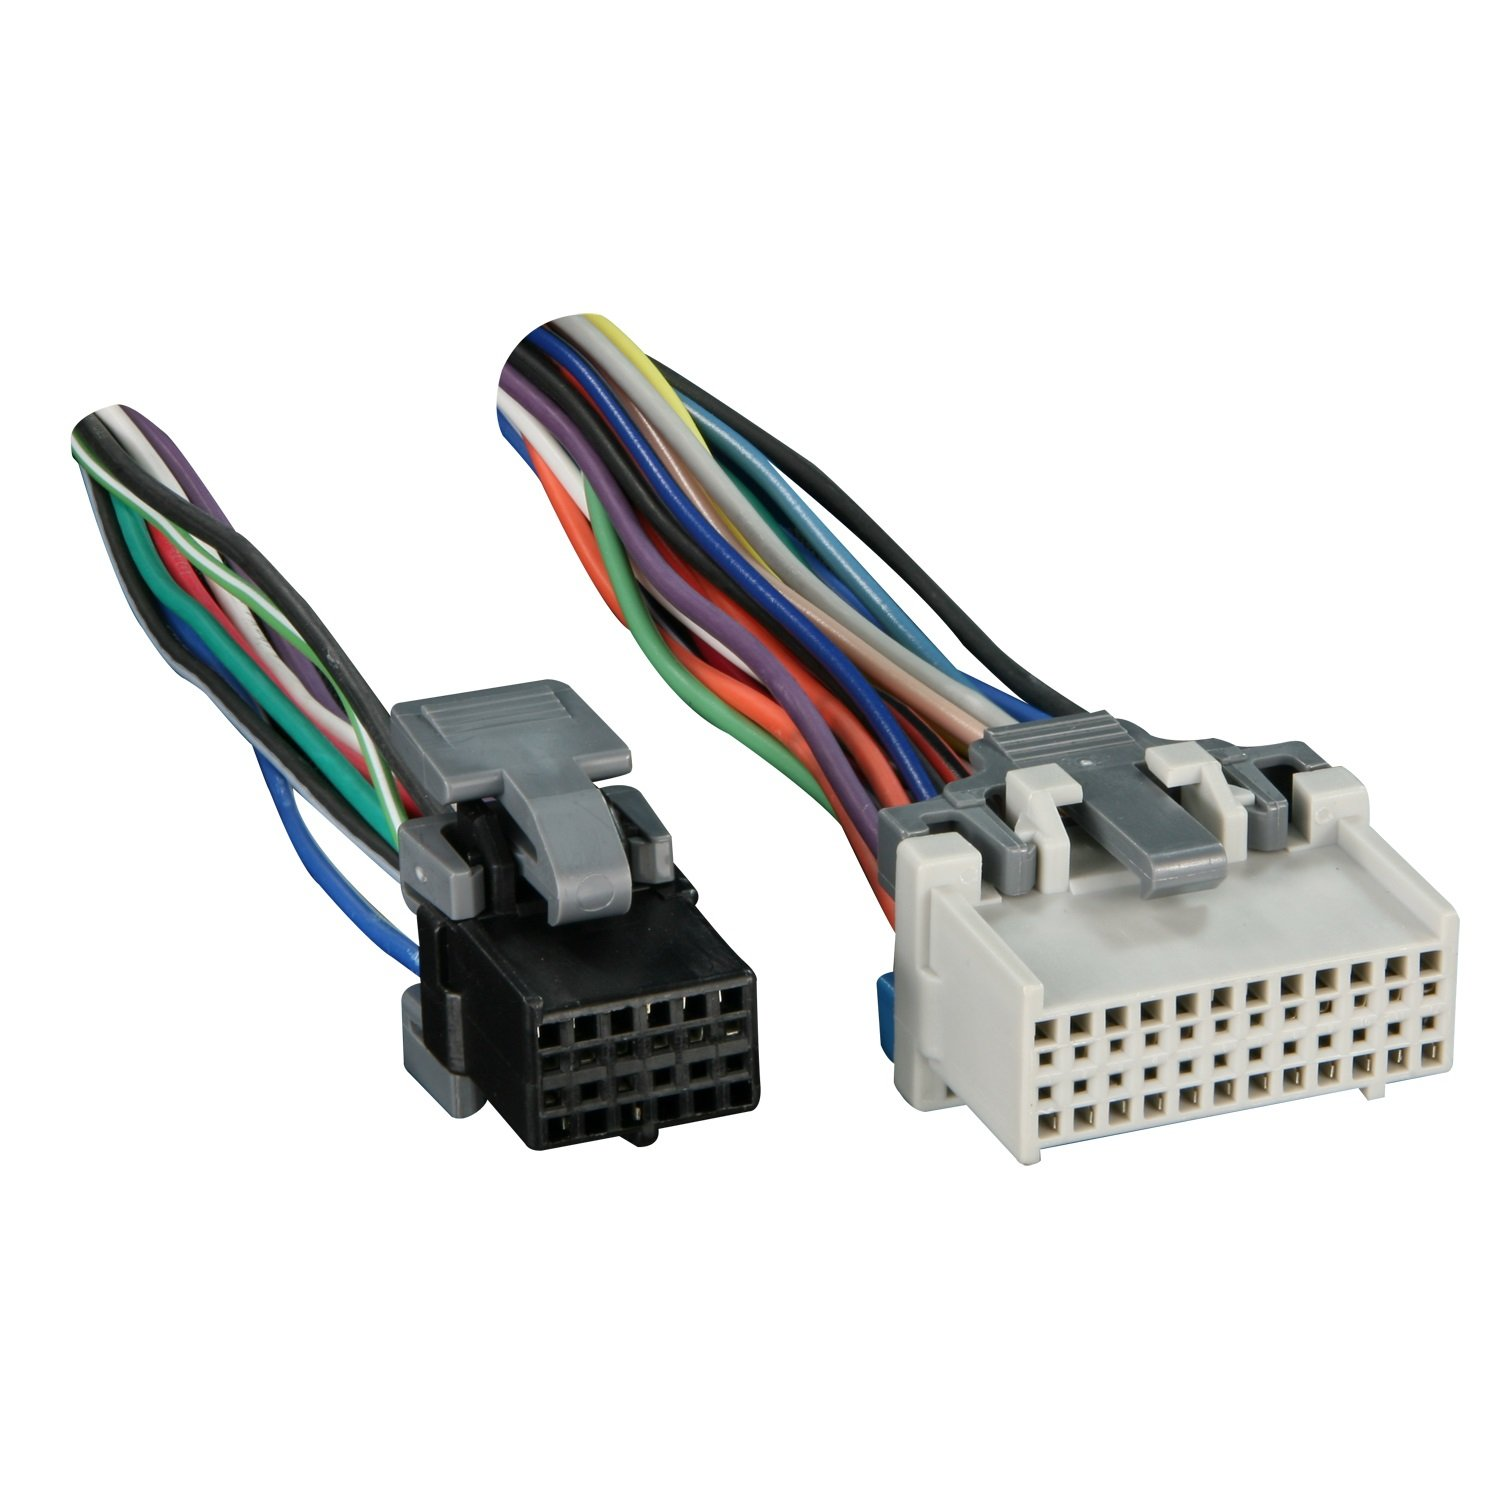 711log4bdML._SL1500_ amazon com metra turbowires 71 2003 1 wiring harness car electronics where to buy a trailer wiring harness at eliteediting.co